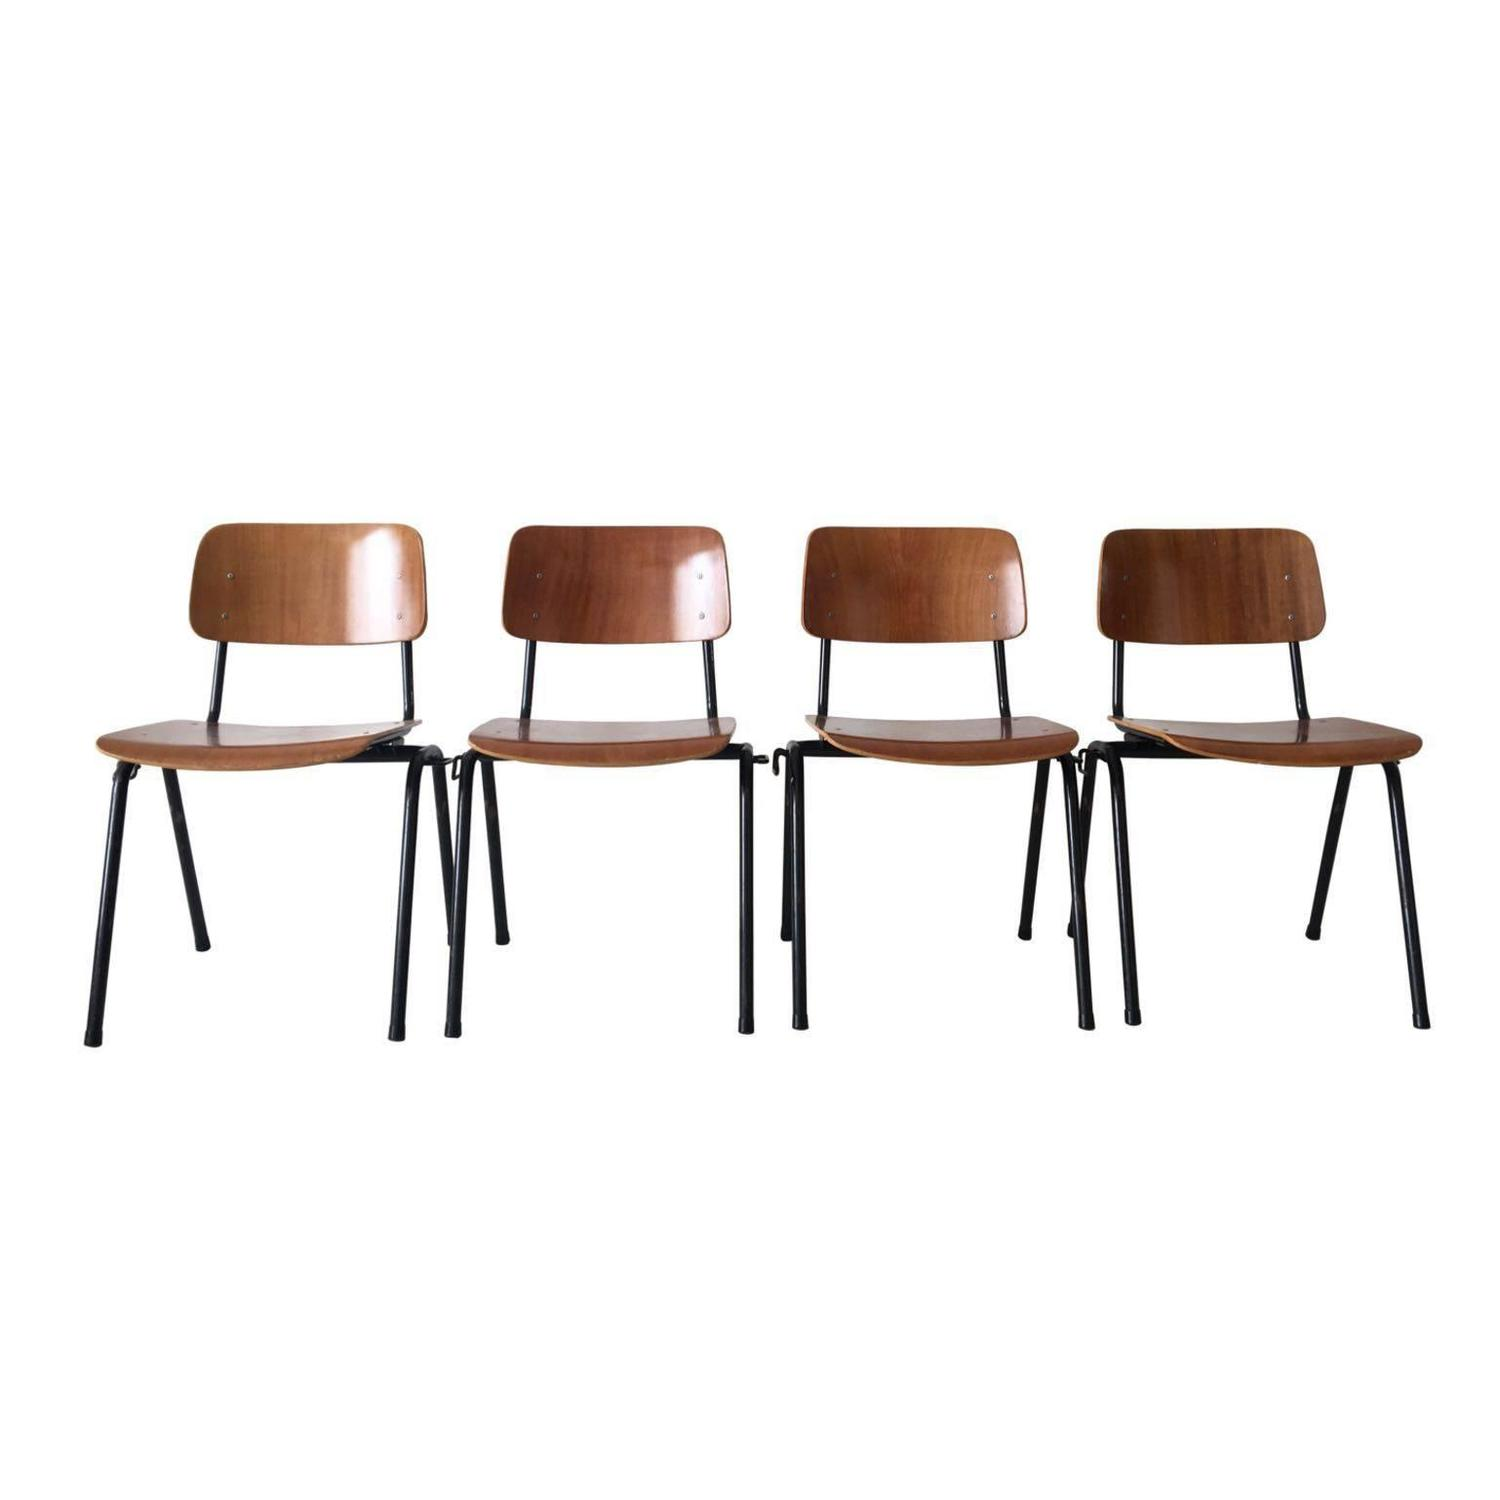 Set of Magnificent School Chairs Produced by Marko Holland 1968